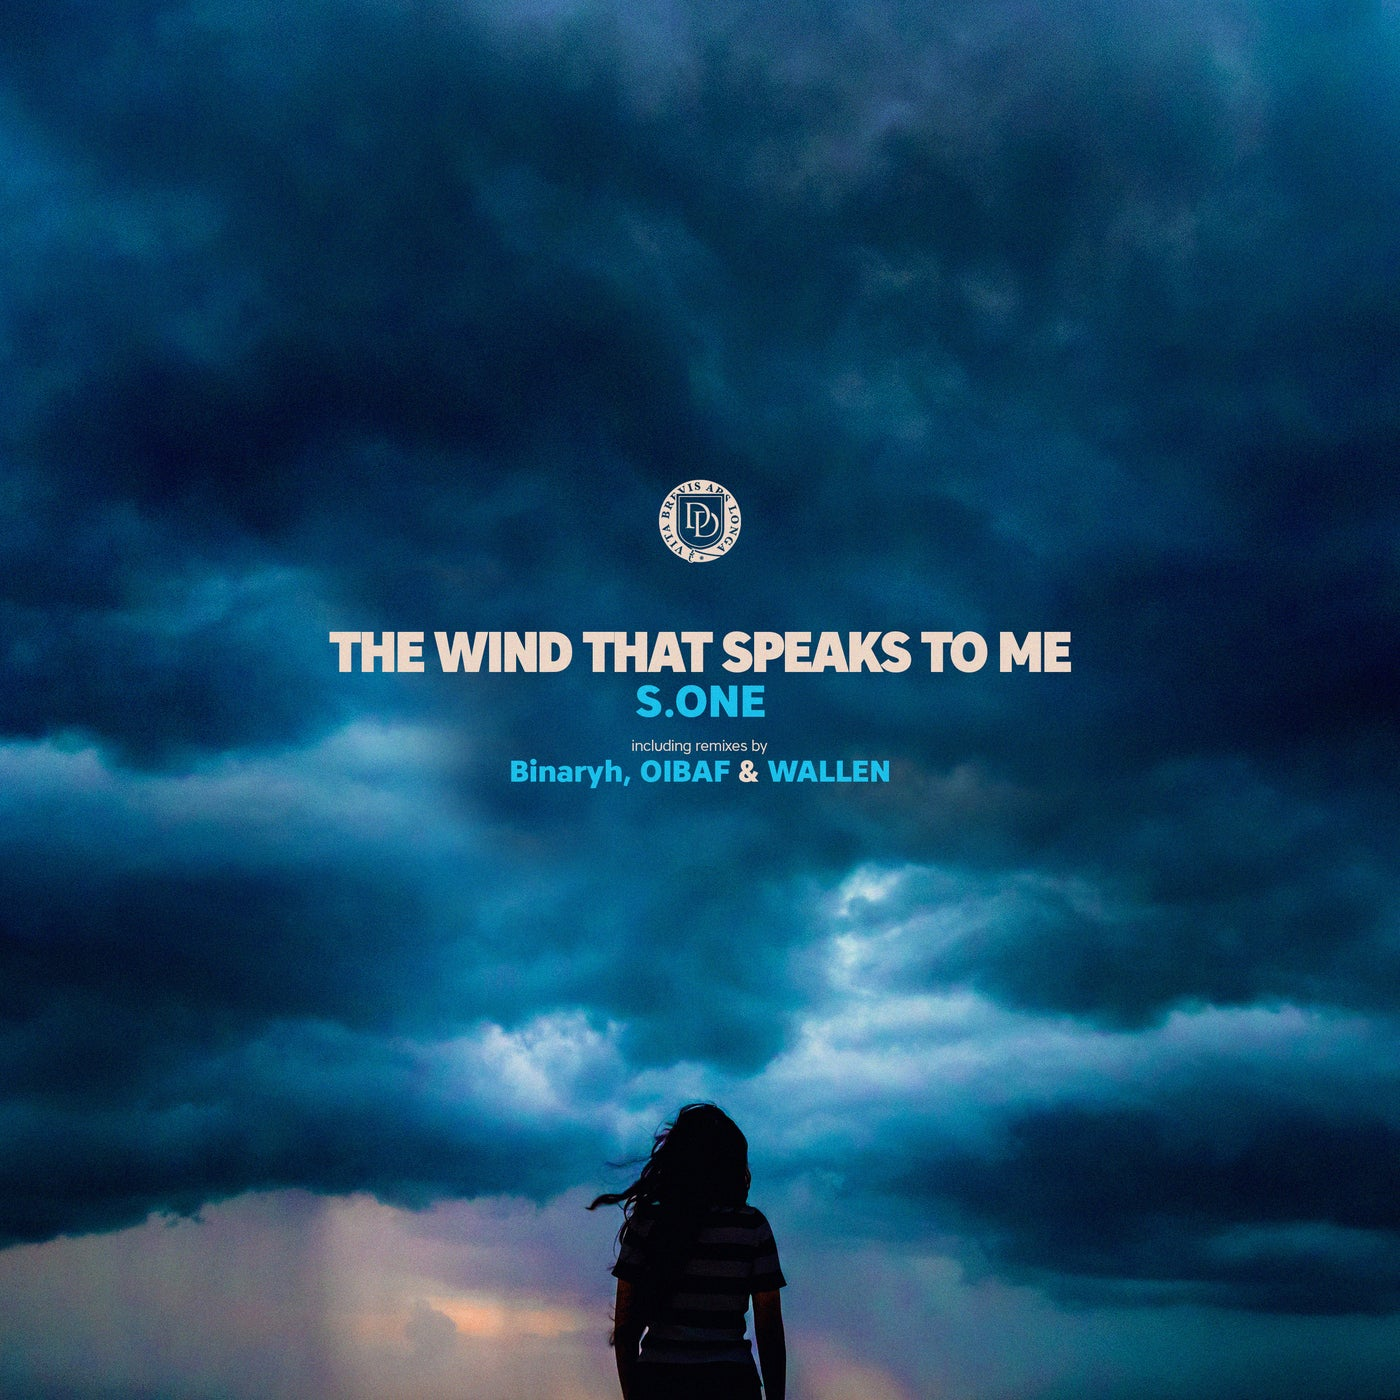 The Wind That Speaks To Me (Original Mix)